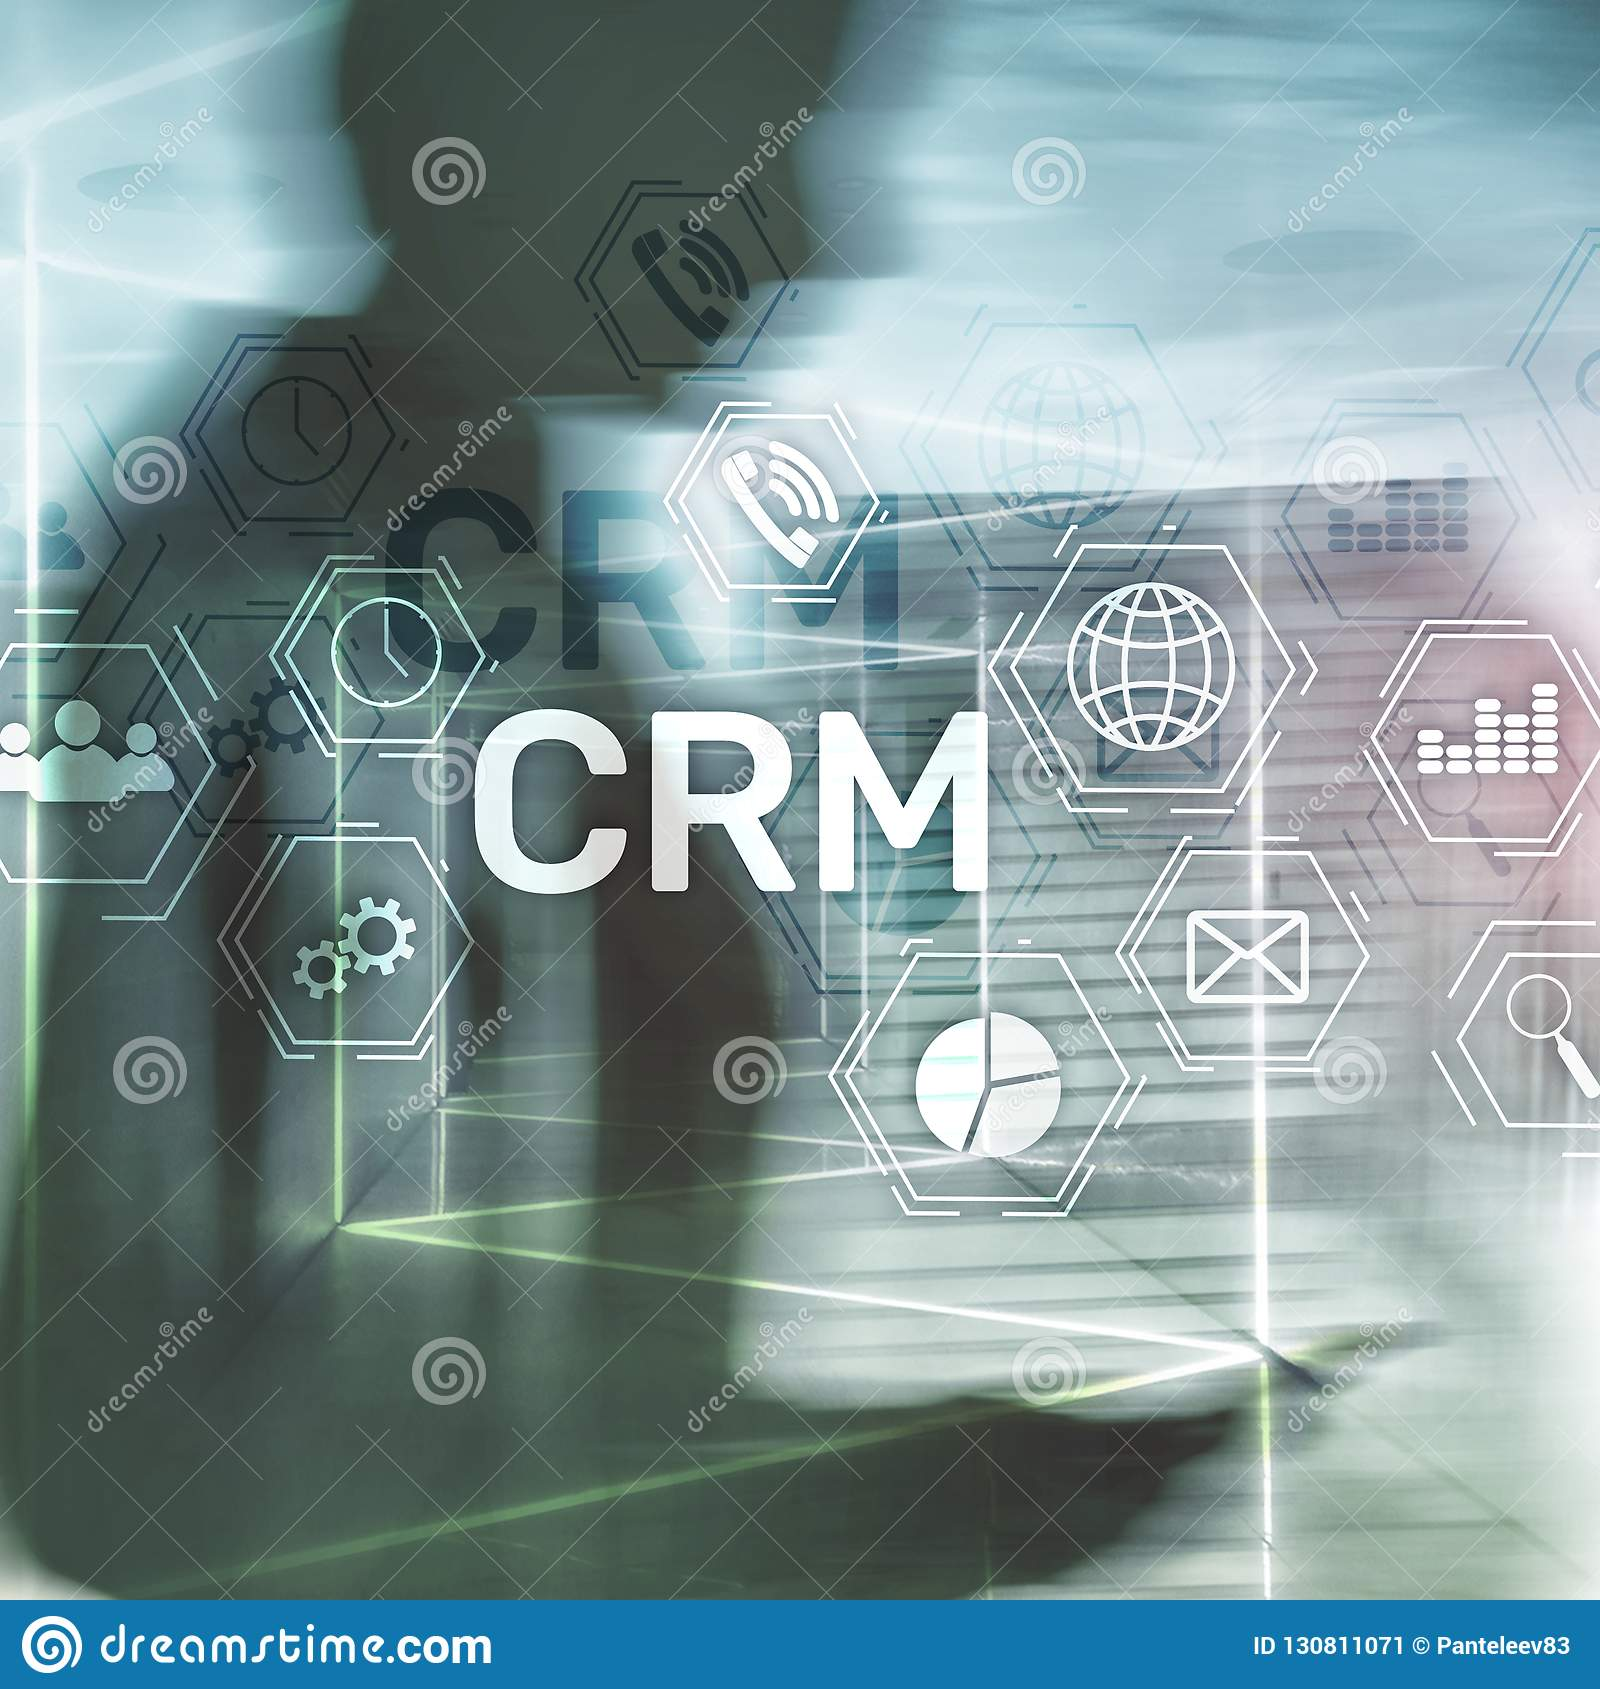 CRM, Customer relationship management system concept on abstract blurred background